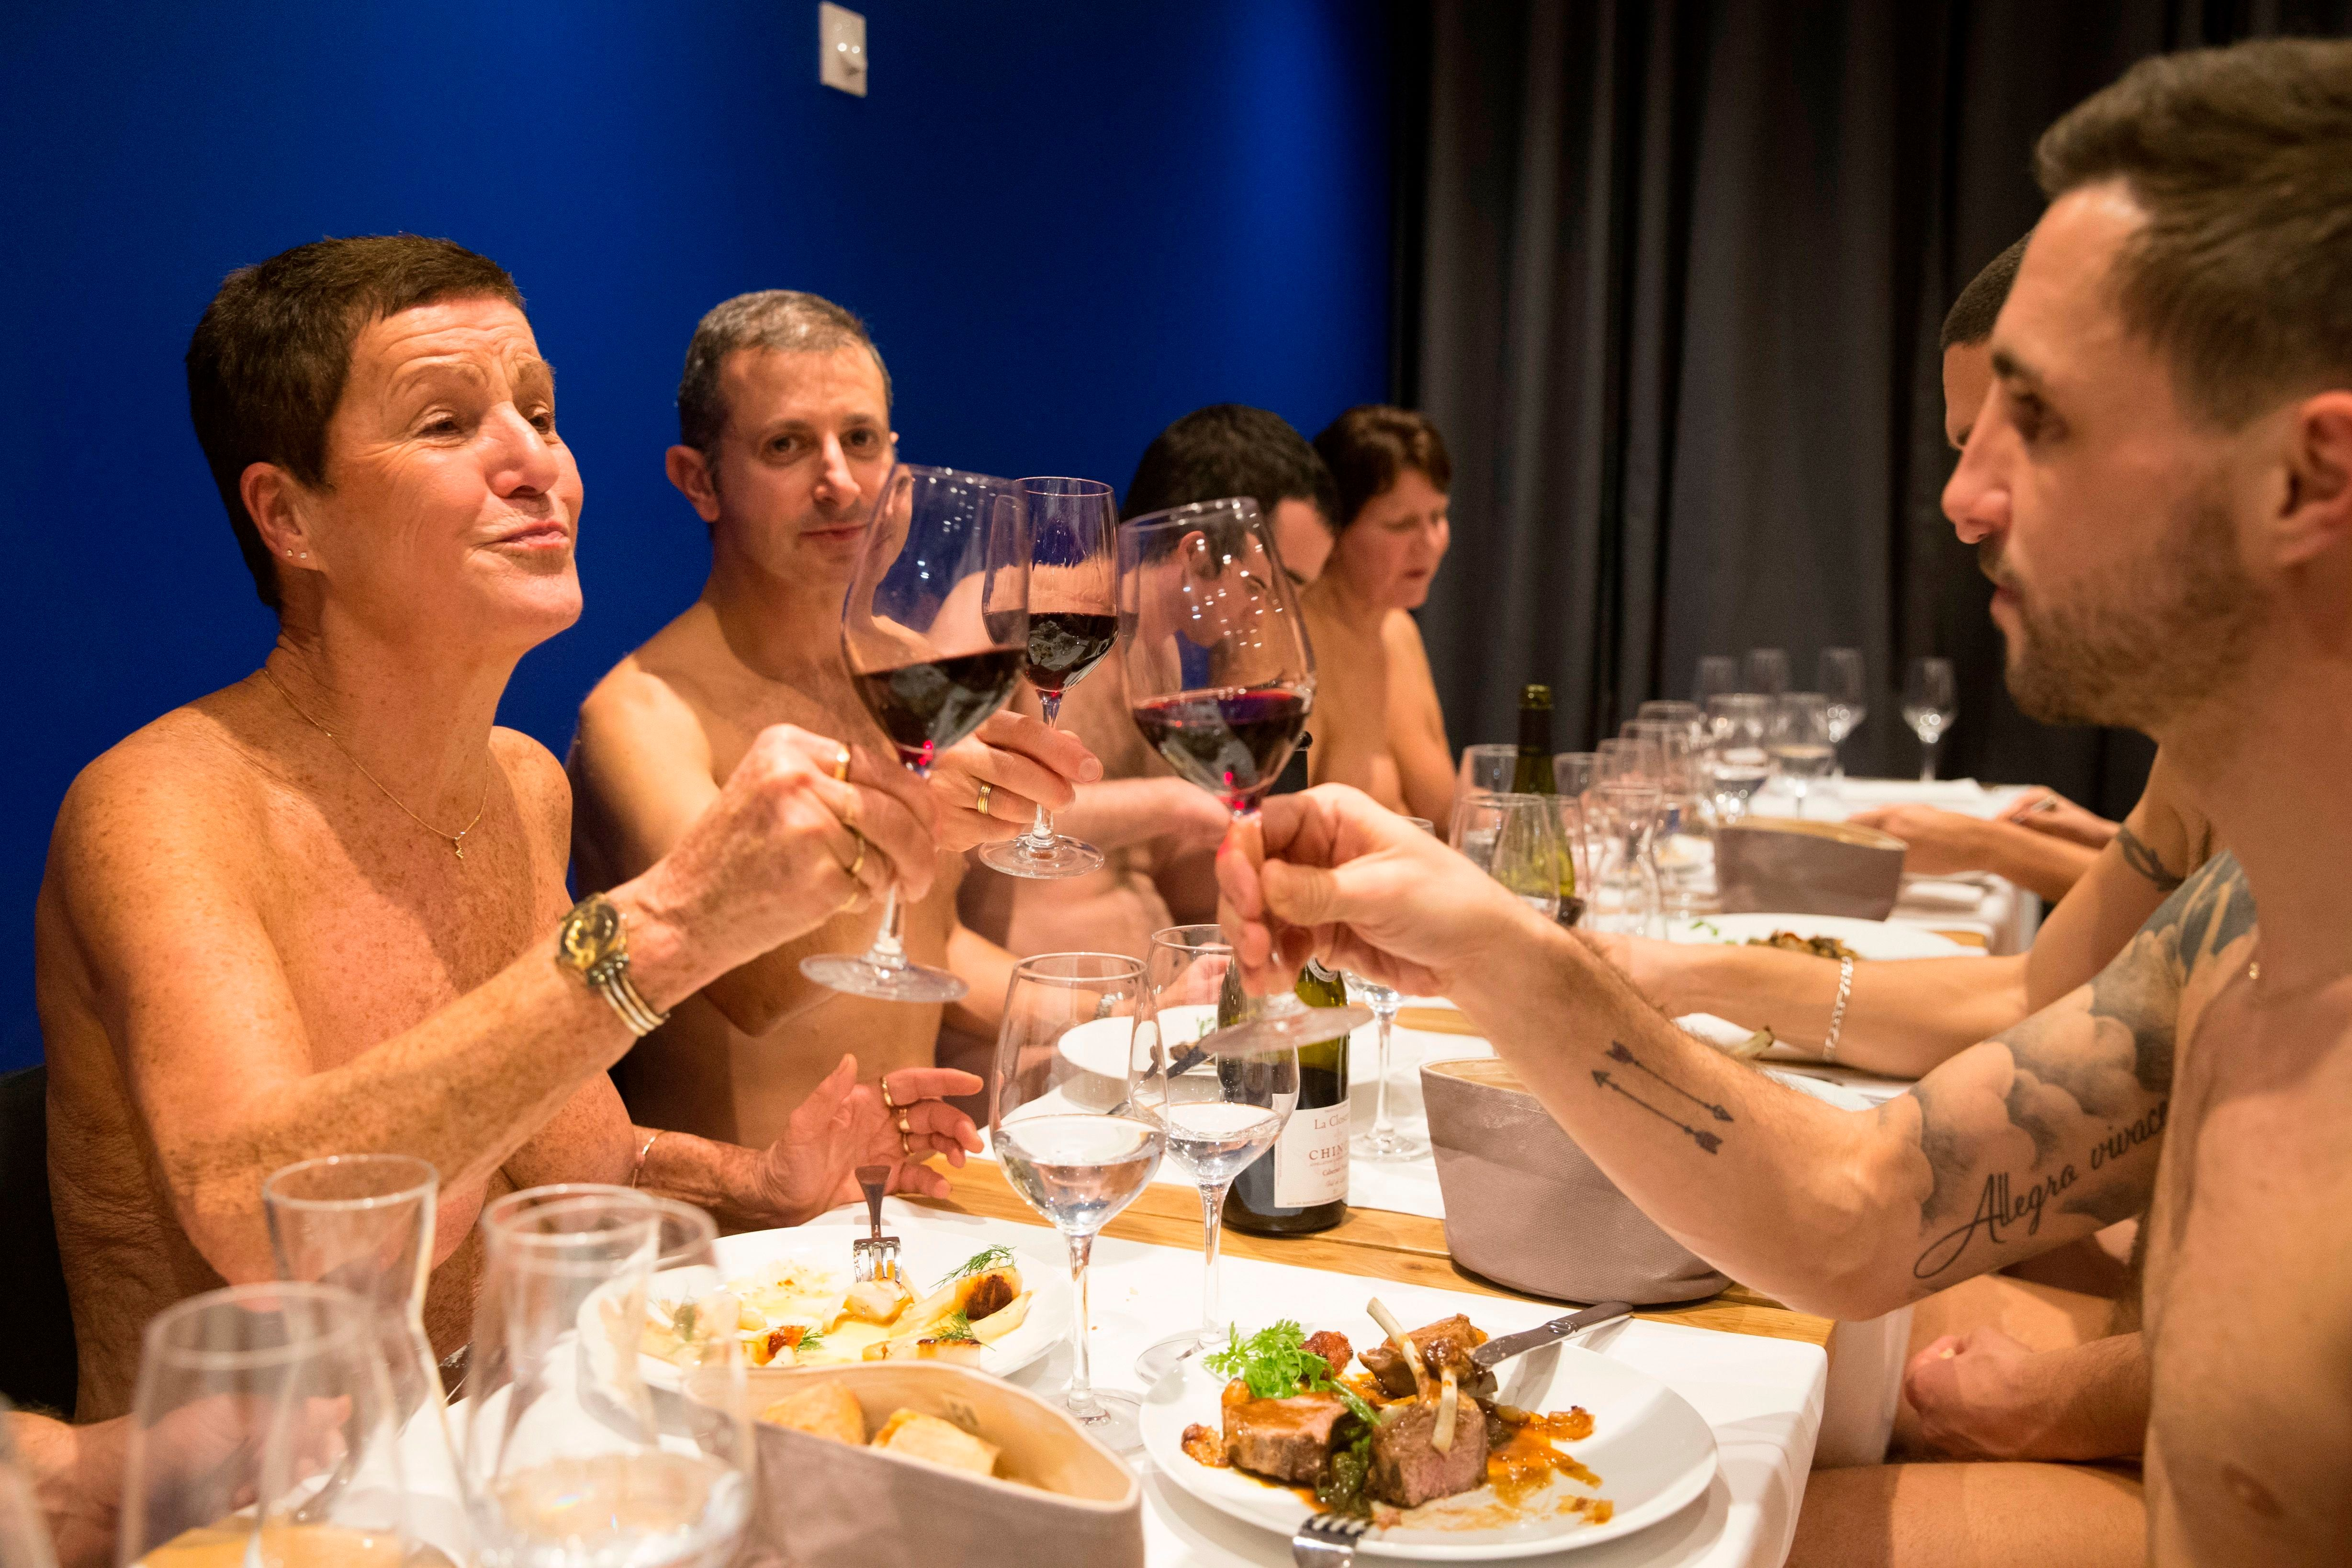 Paris' First Nude Restaurant Closes For Lack Of Business